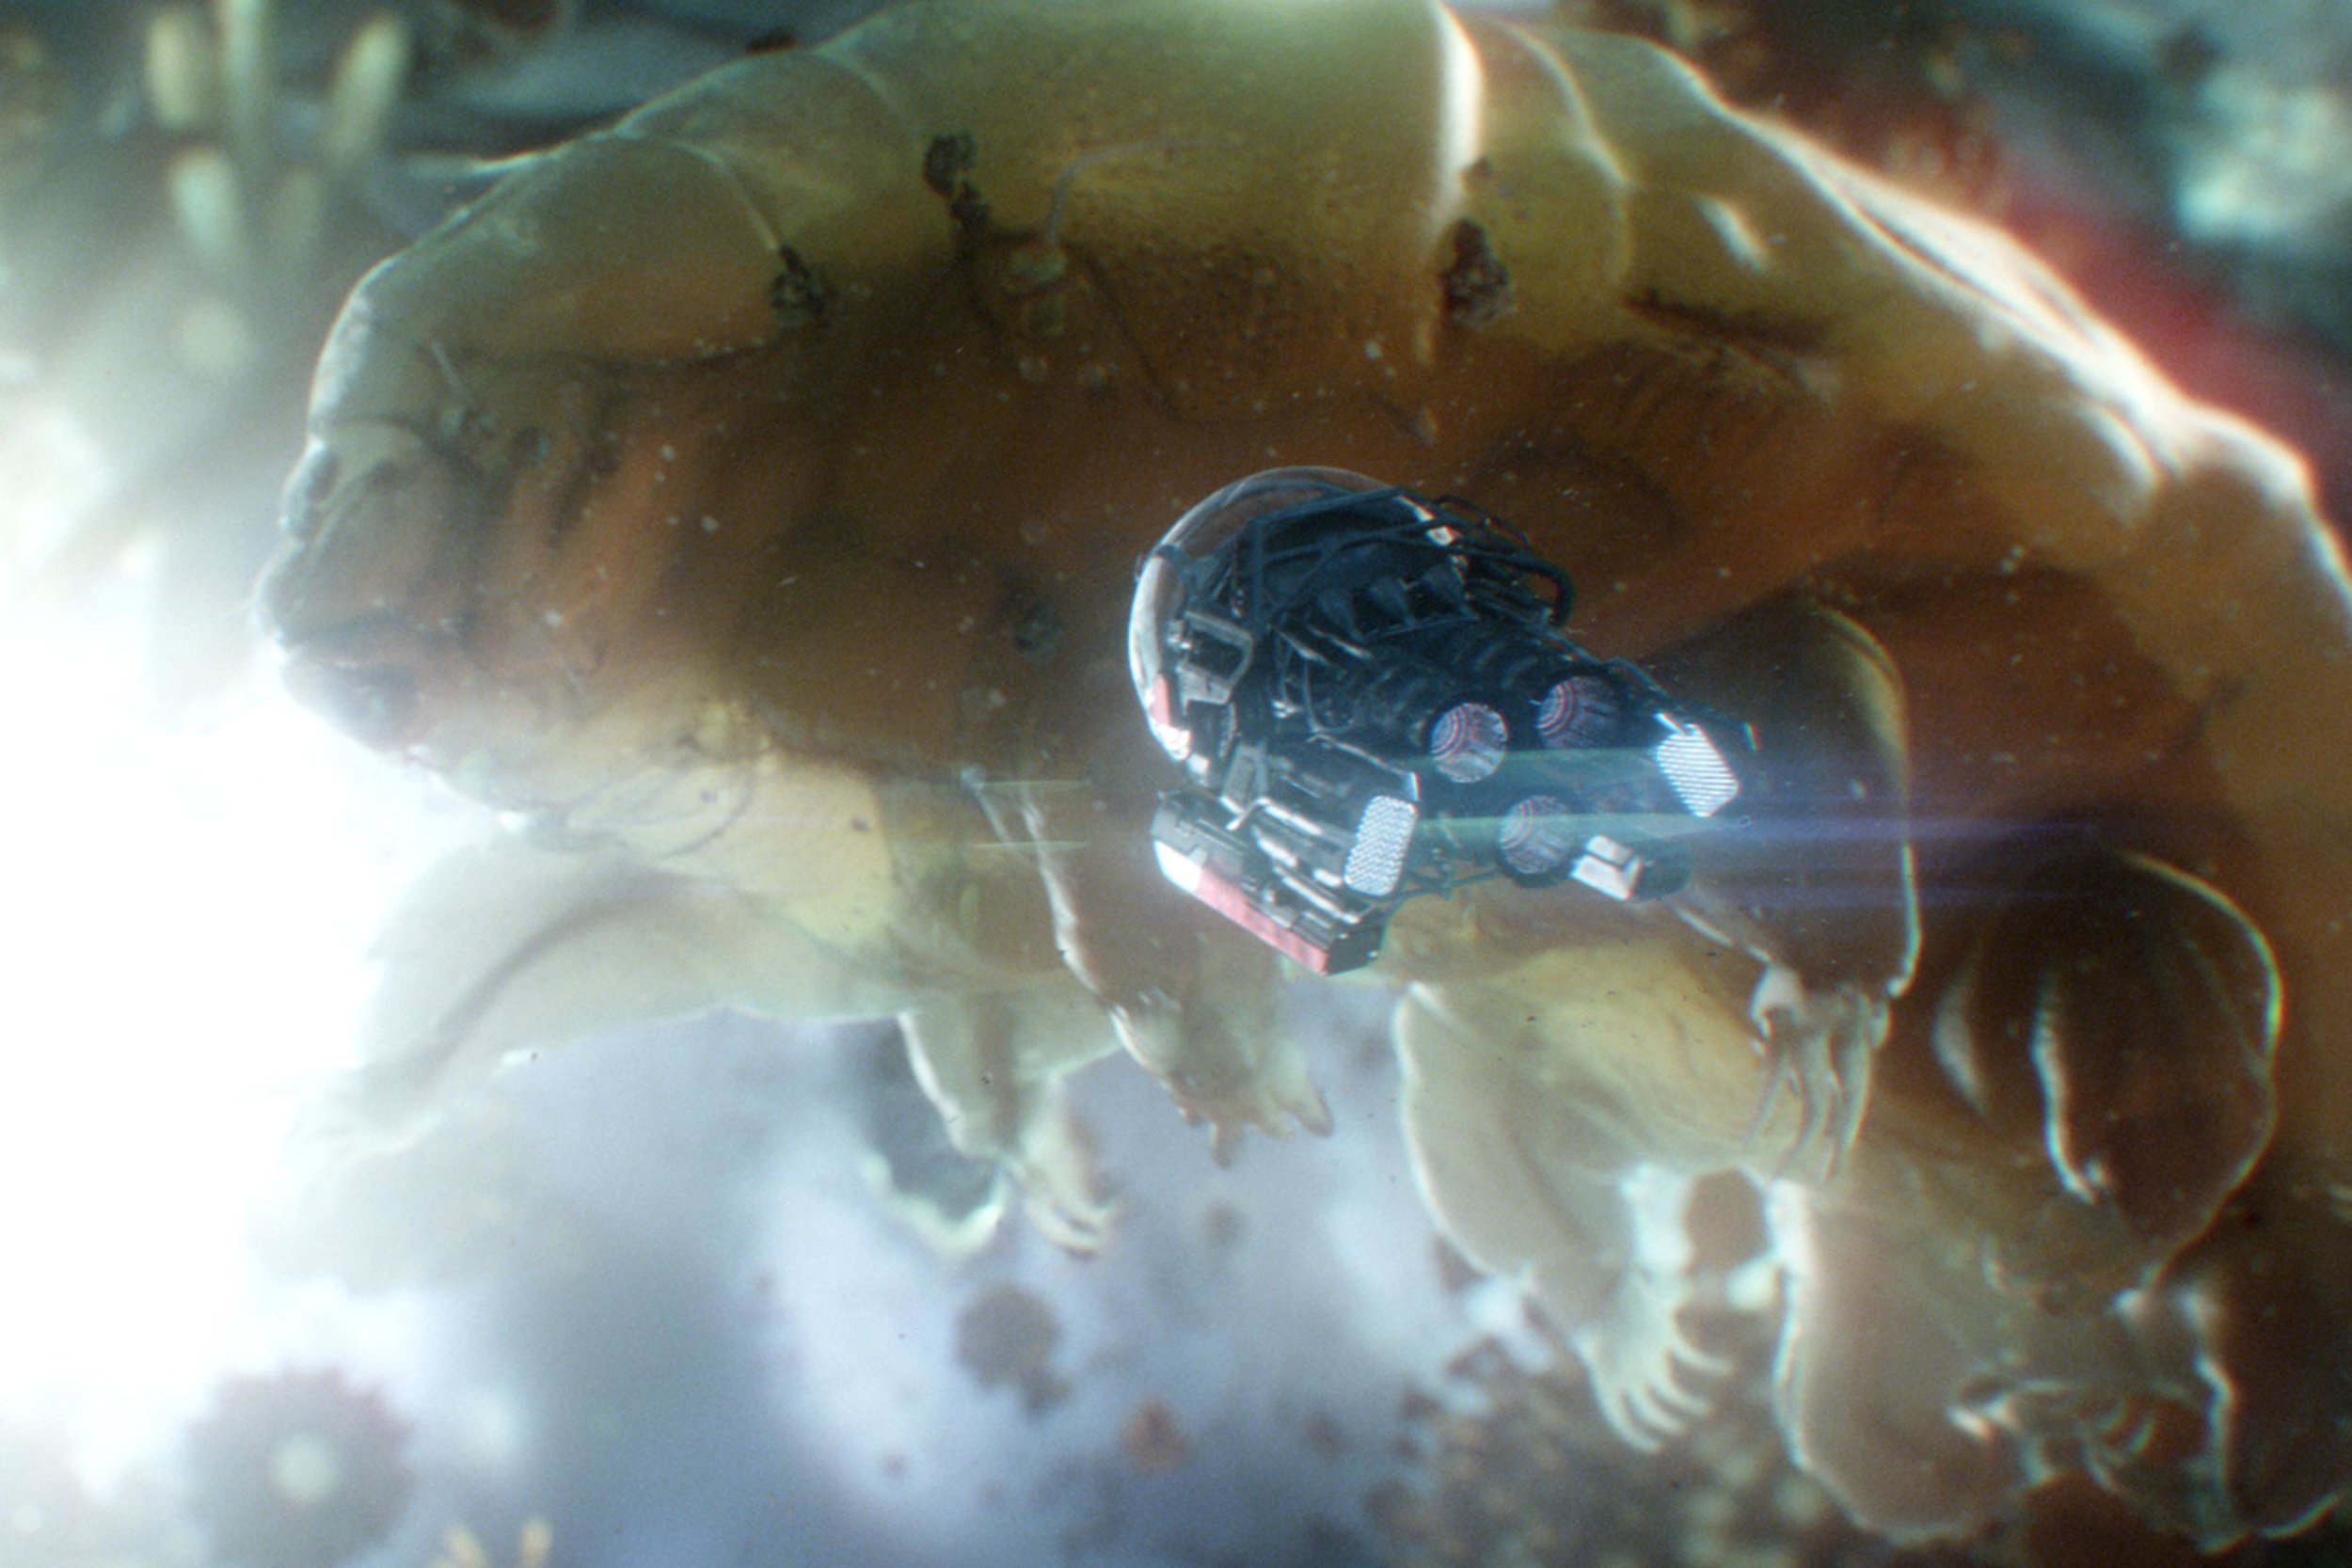 ant-man-and-the-wasp-movie-image-2.jpg